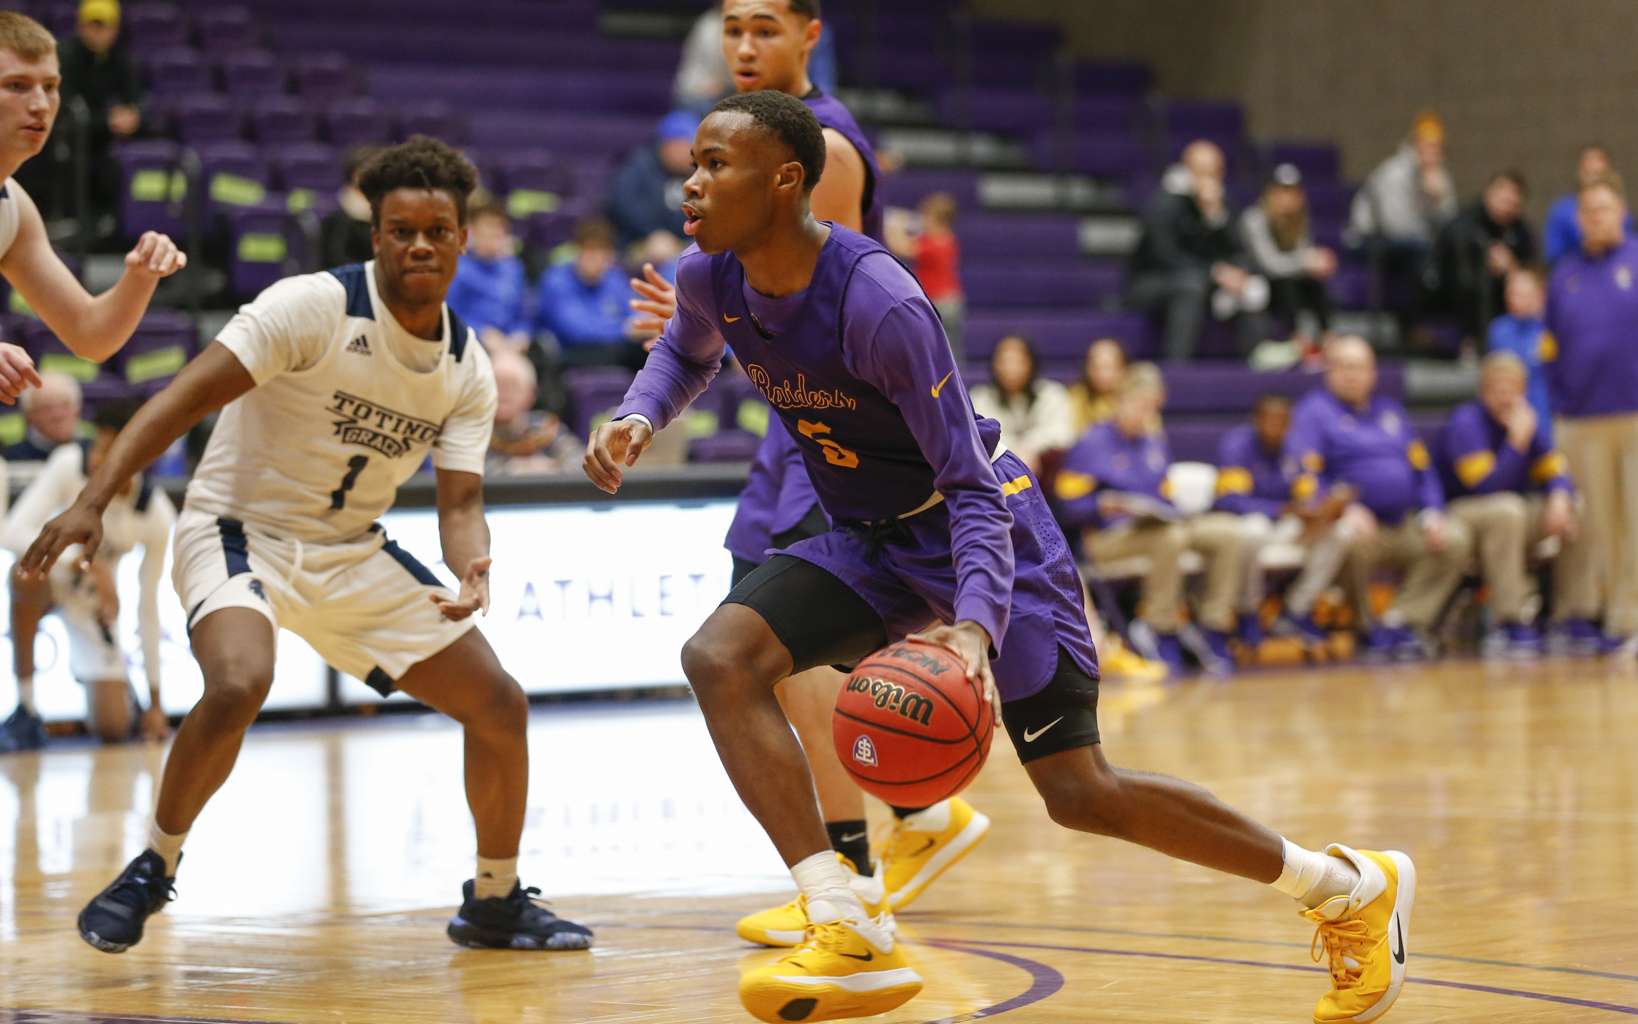 Cretin-Derham Hall's Tre Holloman (5) dashes down the lane against Totino-Grace Saturday night. The Raiders defeated the Eagles 64-54 at the University of St. Thomas. Photo by Jeff Lawler, SportsEngine